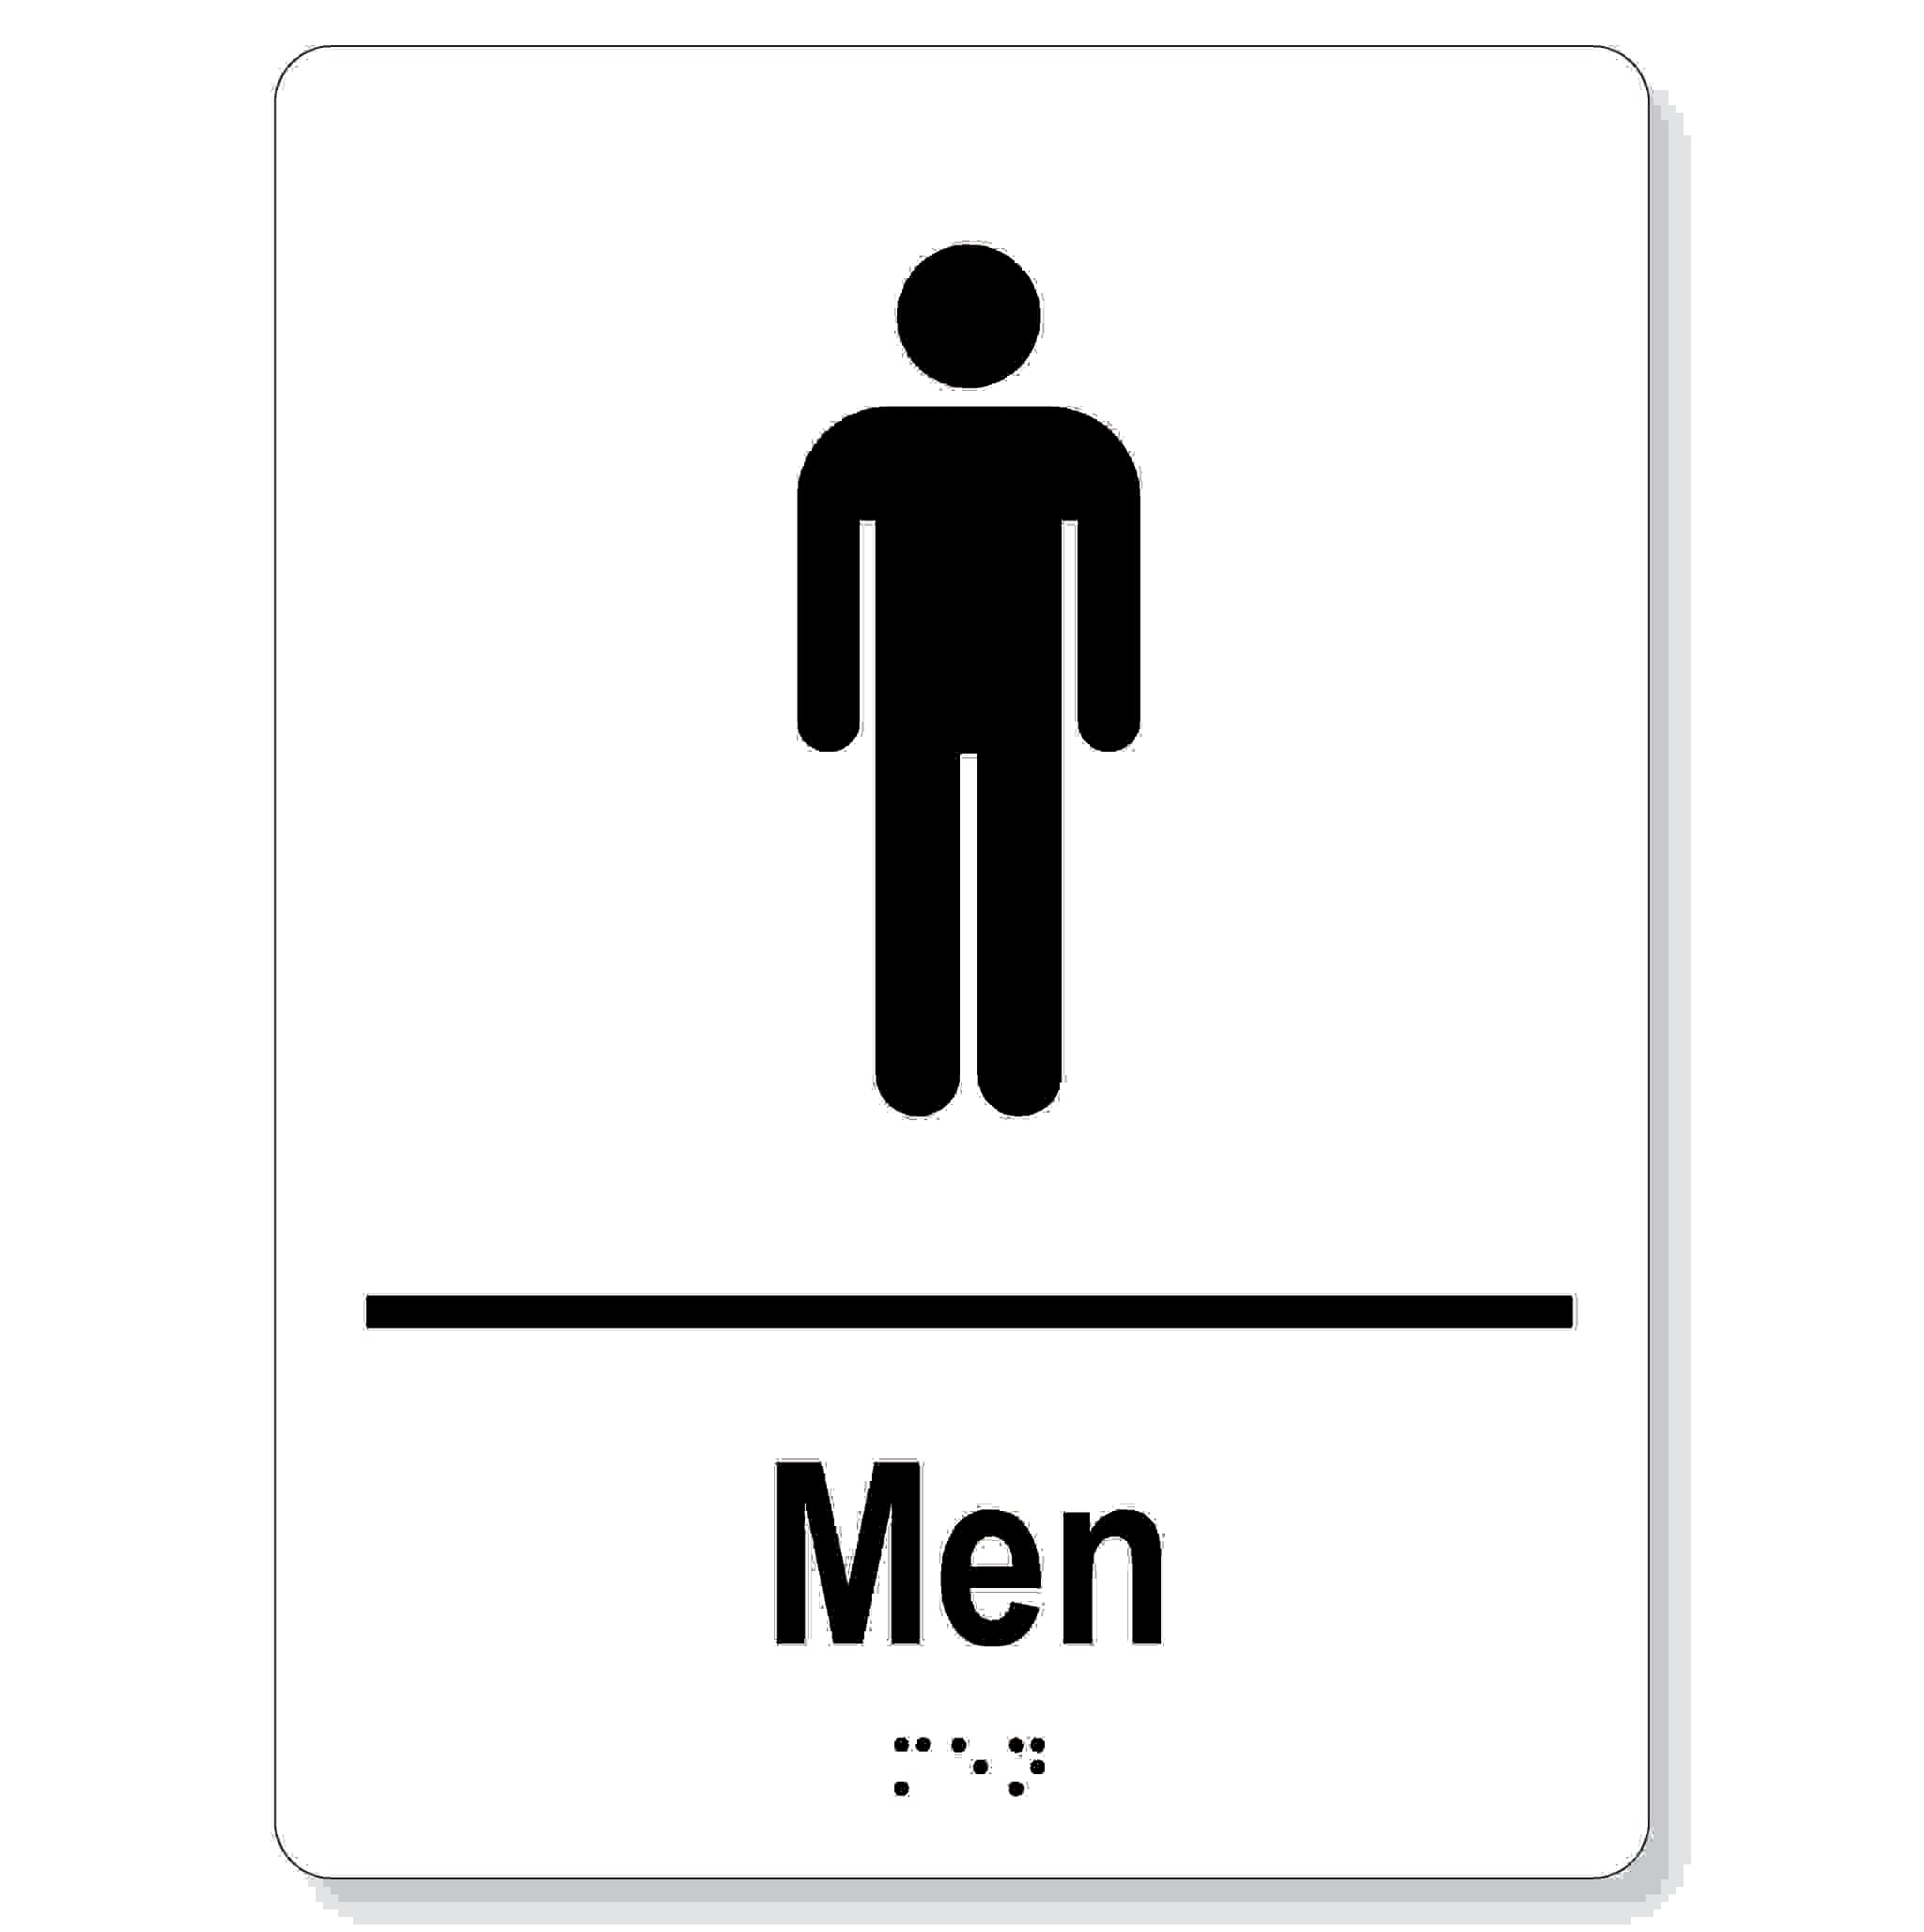 Men washroom sign